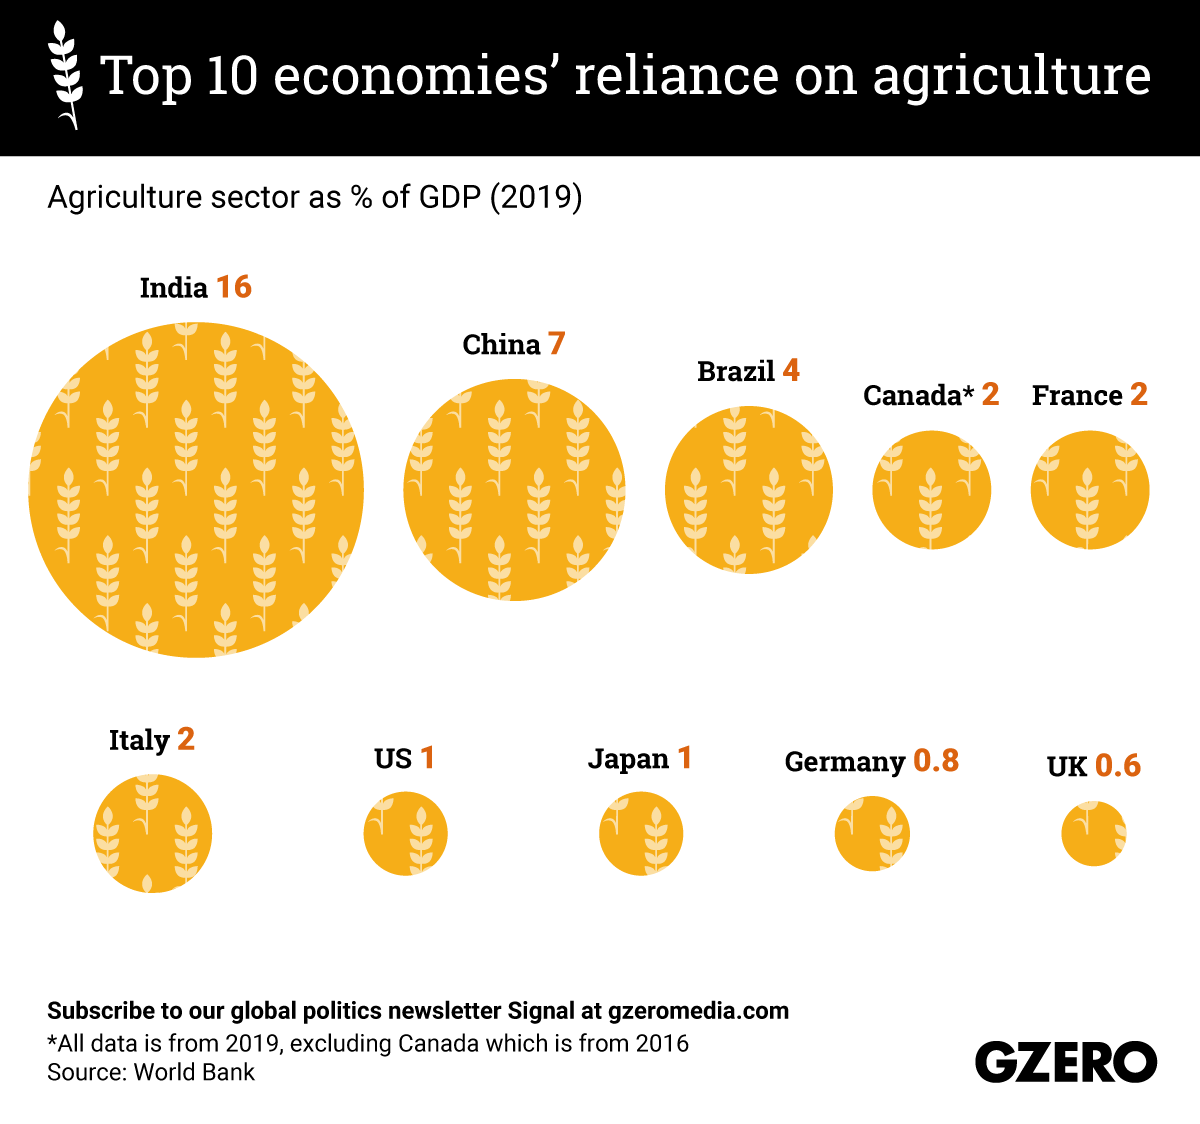 The Graphic Truth: Top 10 economies' reliance on agriculture